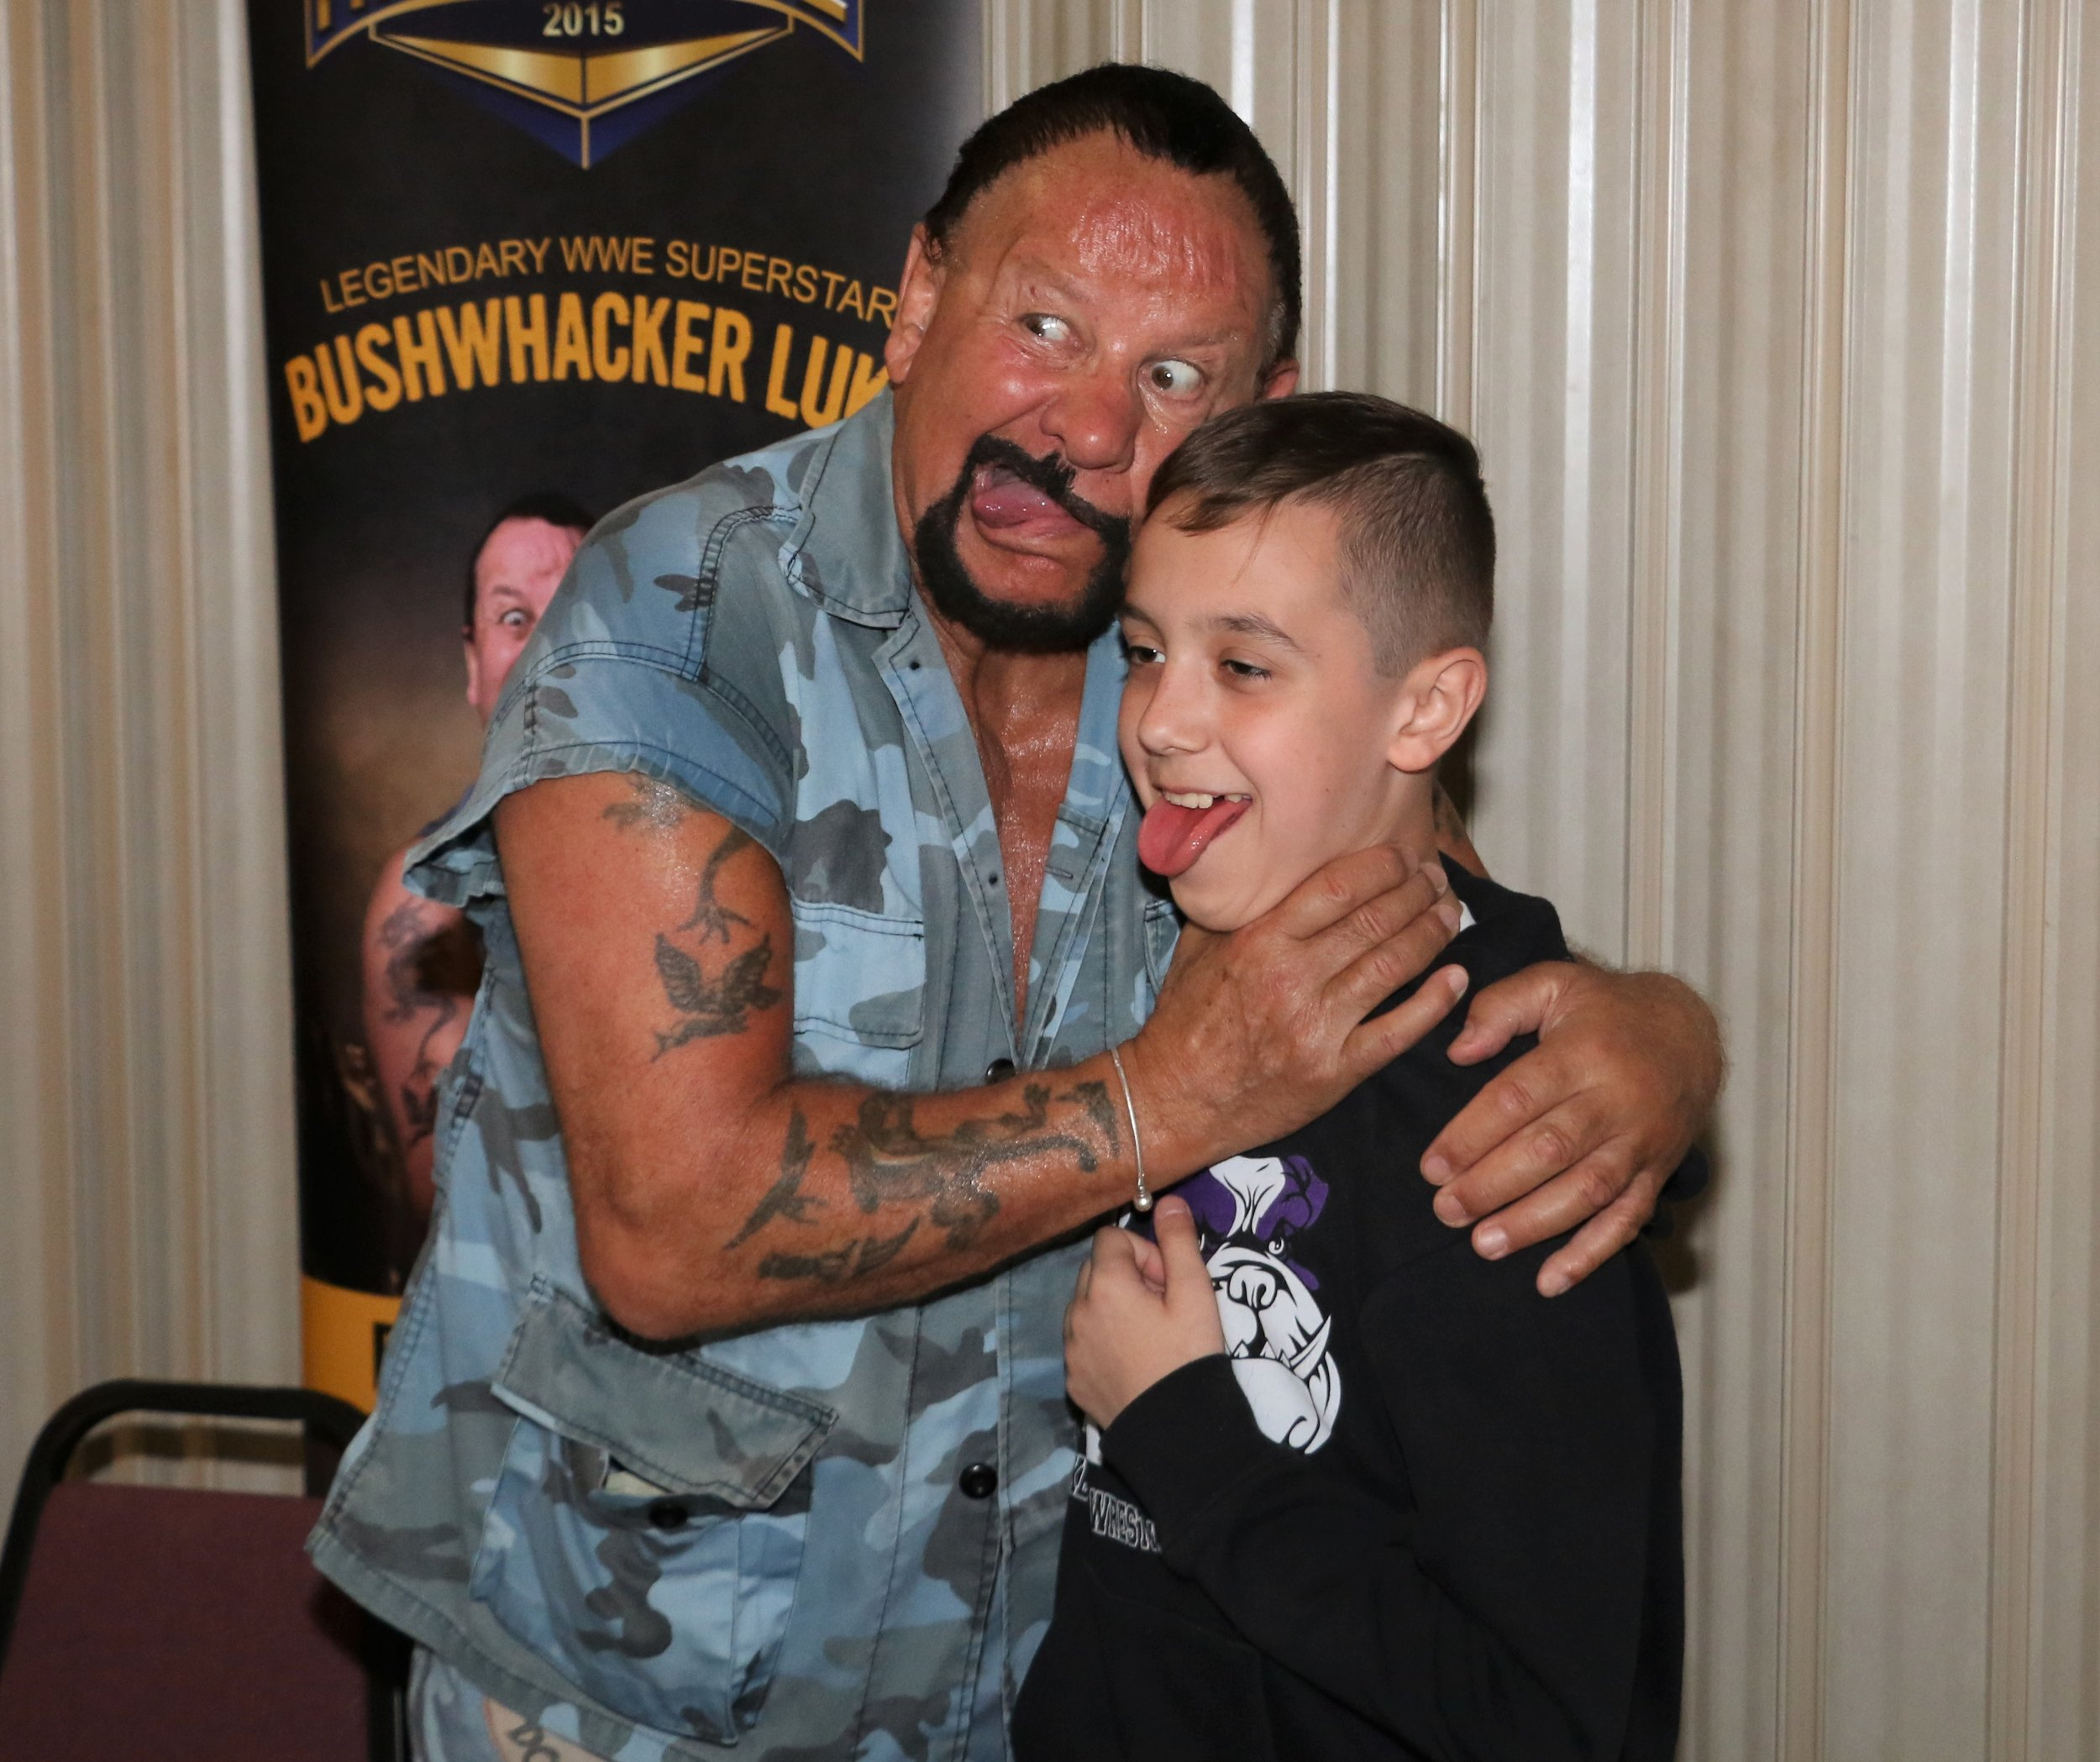 Bushwhacker Luke playfully poses for a picture with a fan.